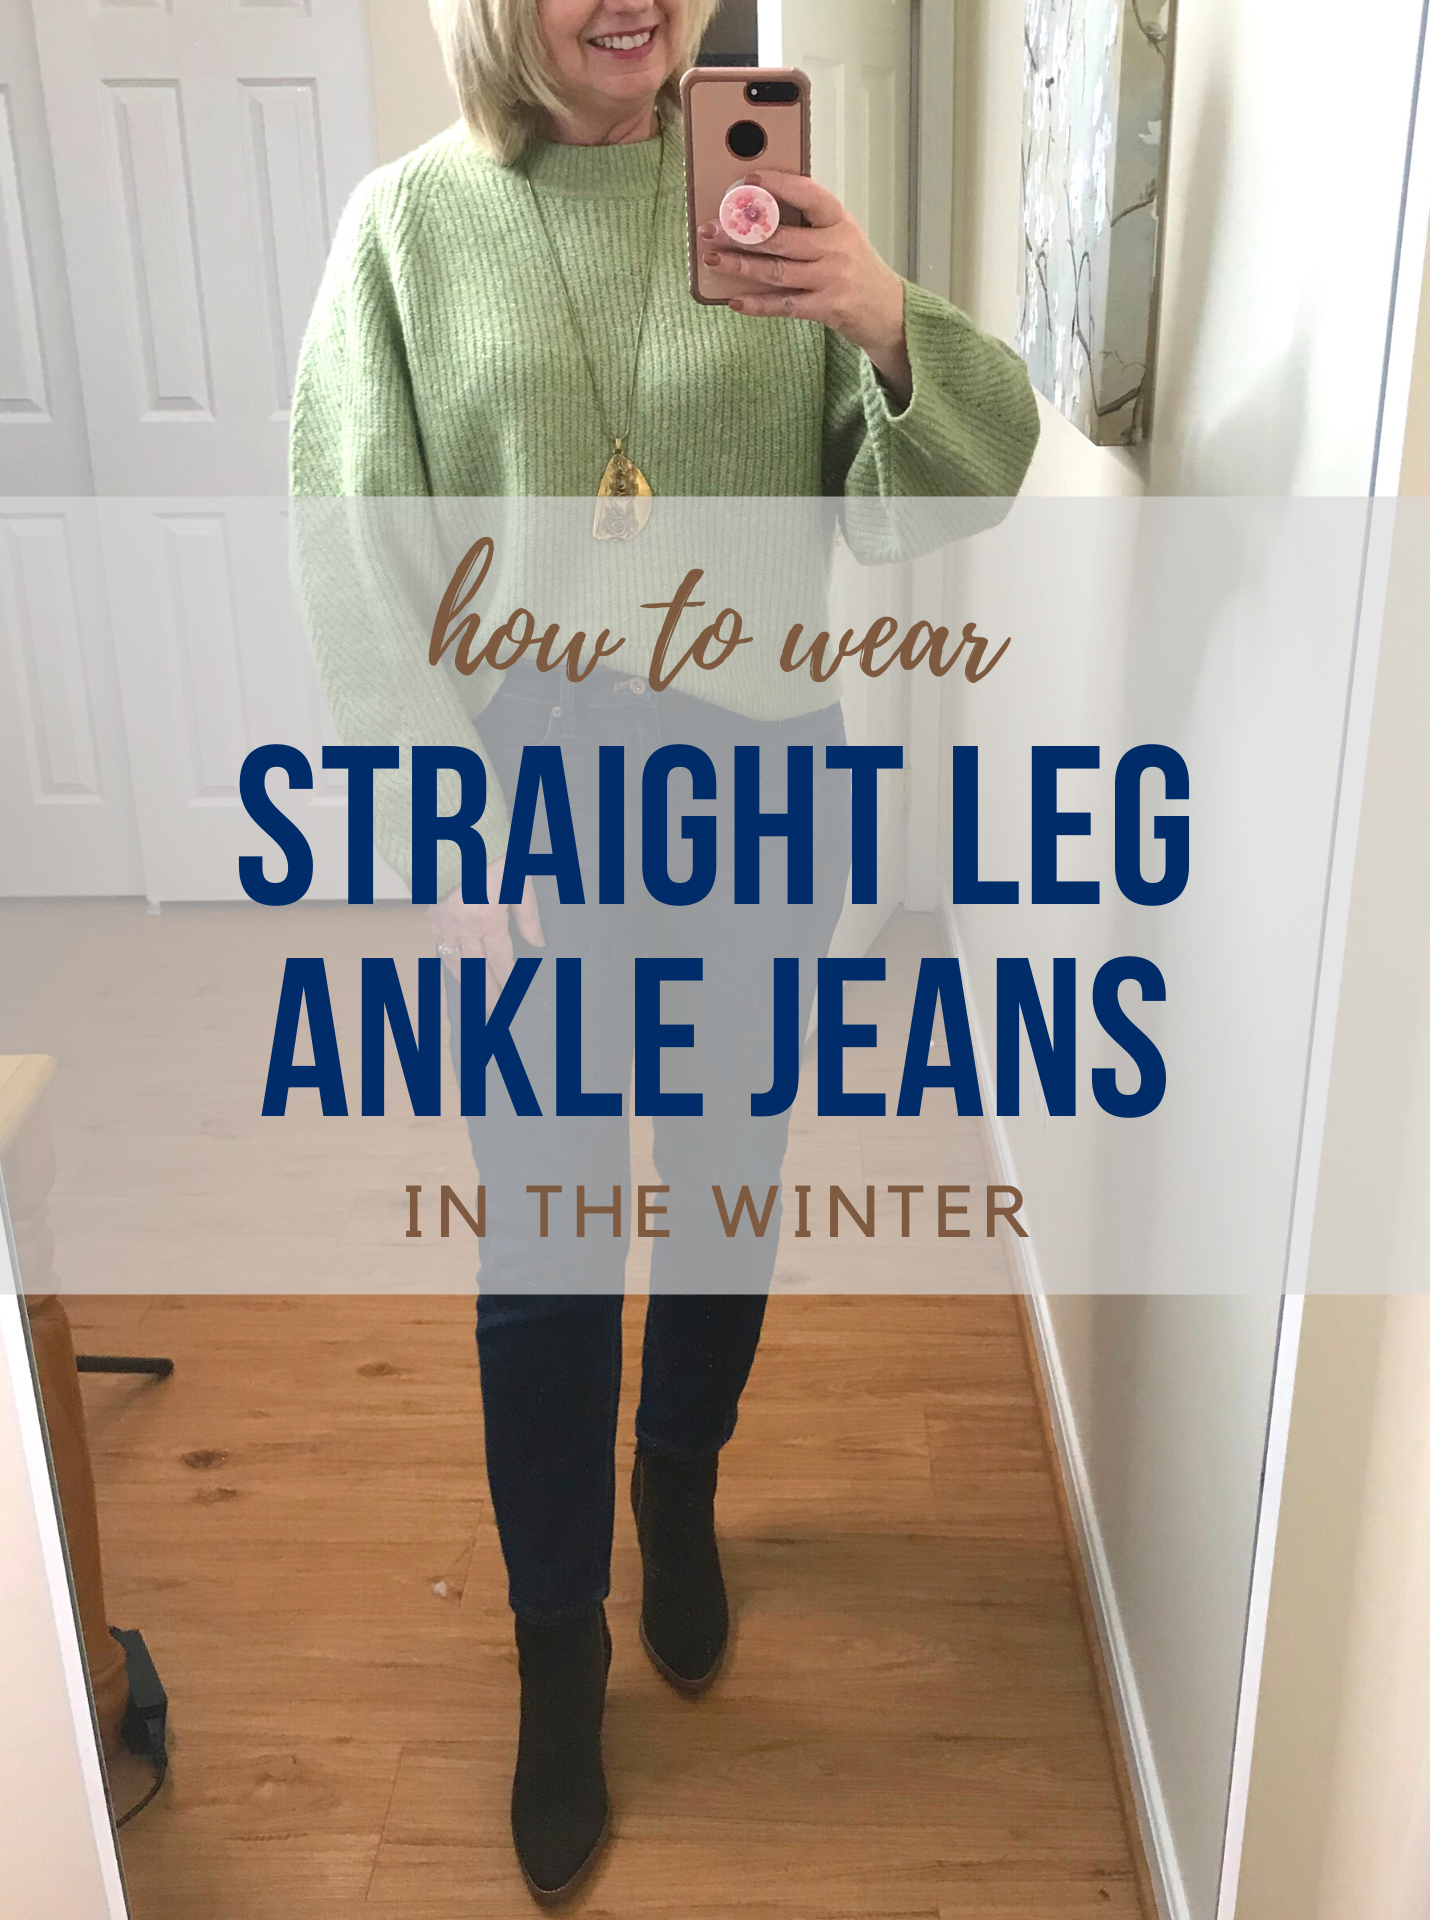 How to Wear Straight Leg Ankle Jeans in the Winter